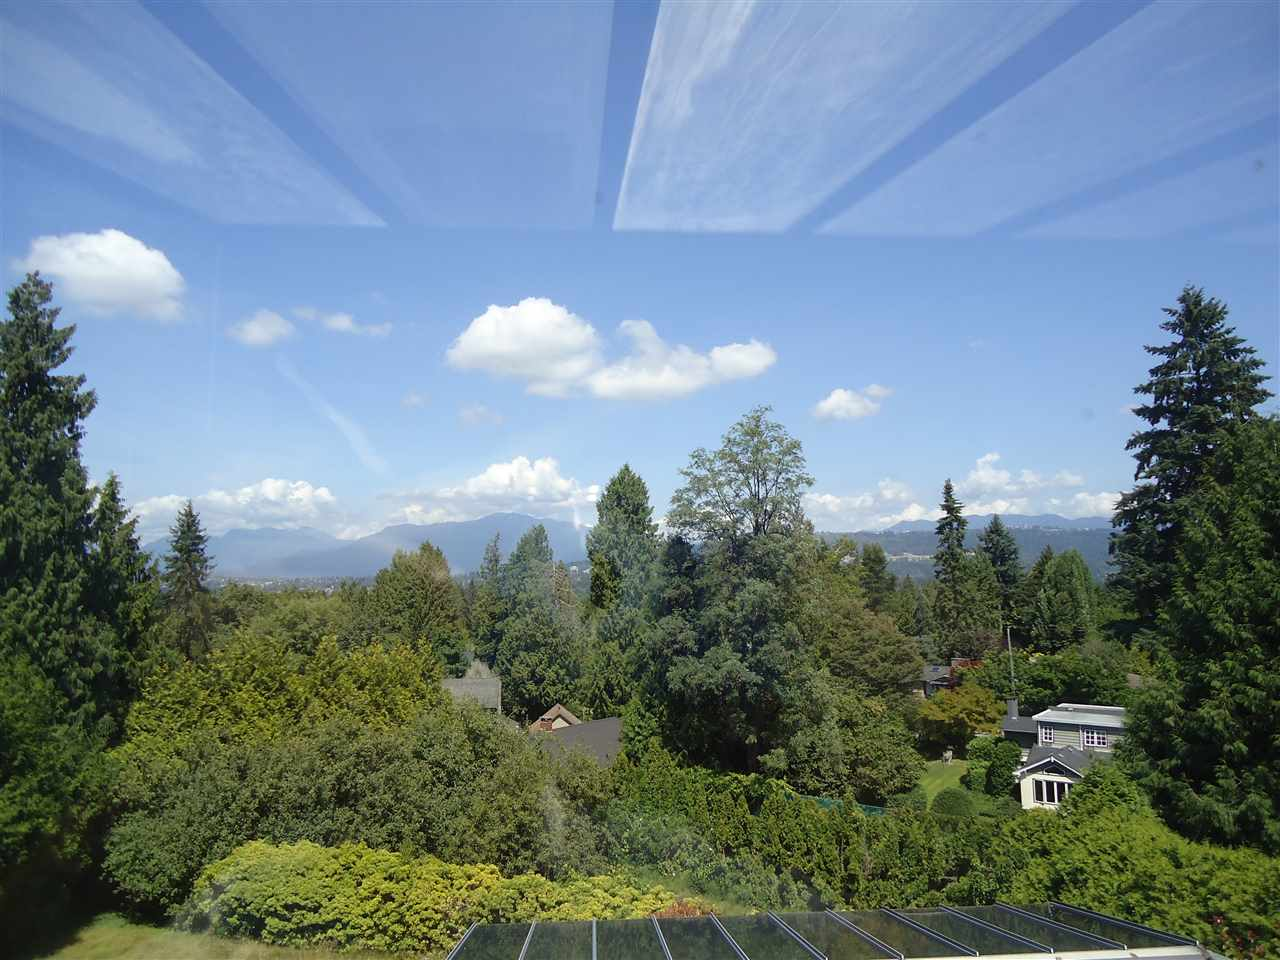 Huge lot (larger than 20,000 sqft) in Buckingham which is best area in Burnaby, custom built home with tons of characters, you can see the fabulous mountain view even on the main floor, walkout basement, private huge backyard, friendly neighbourhood, quiet location, close to Metrotown and SFU, easy to access Hwy 1.